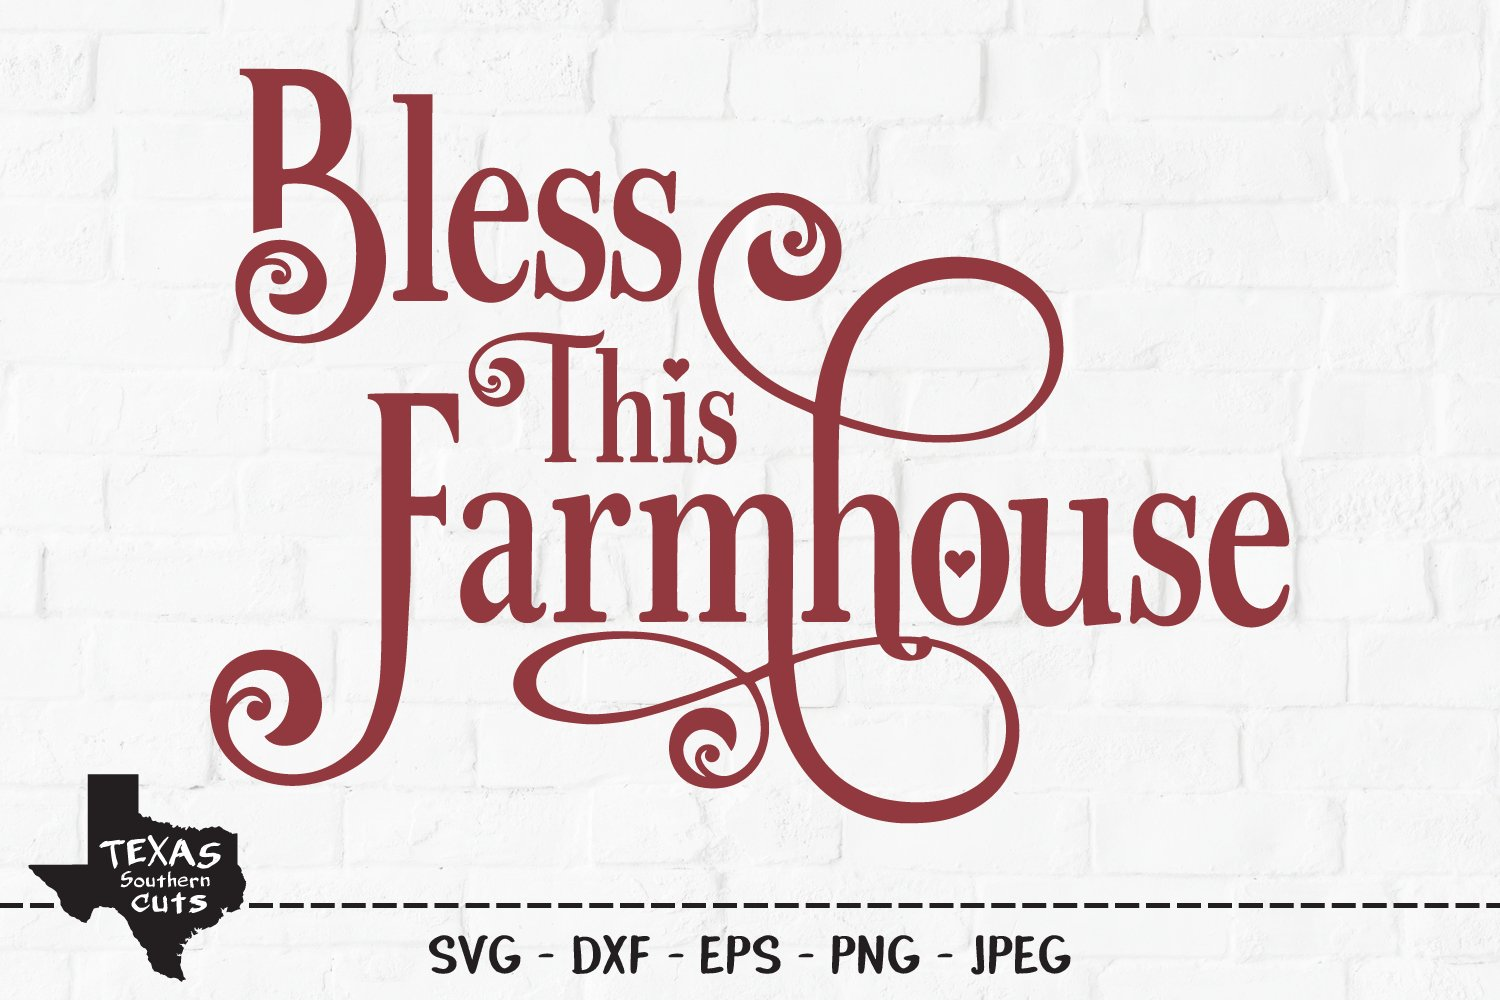 Bless This Farmhouse Svg Cut File Country Home Sign Design 368618 Svgs Design Bundles